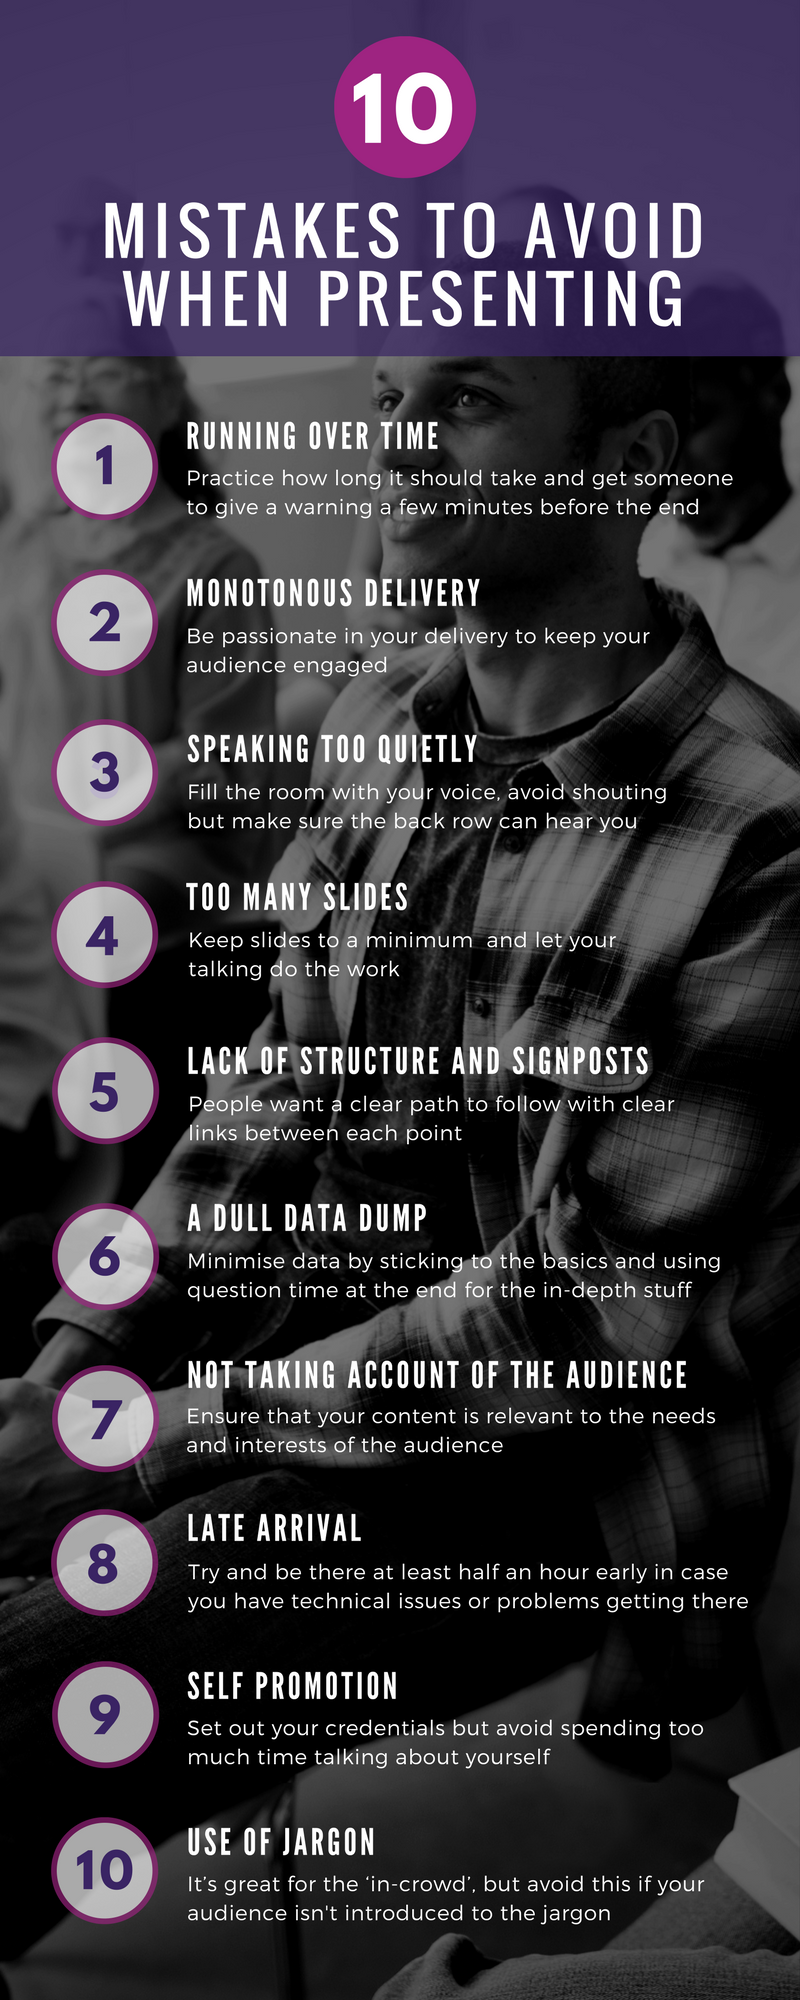 10 mistakes to avoid when presenting (3).png